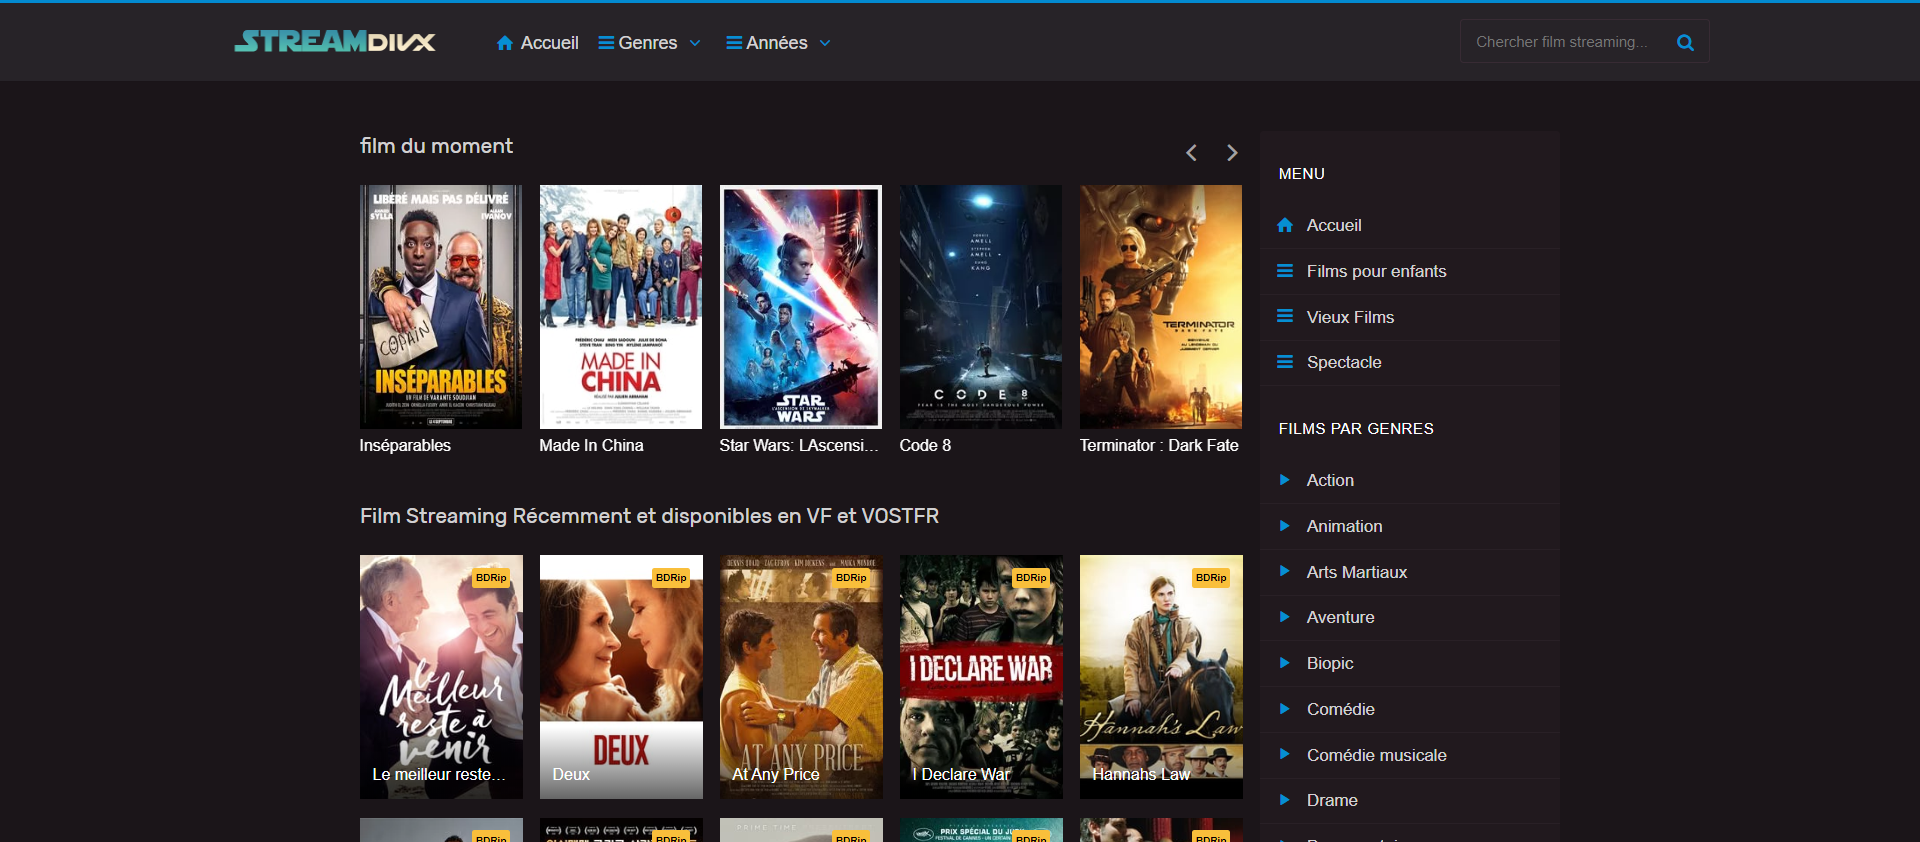 meilleures alternatives Dadyflix - streamdivx Film Streaming Gratuit, Voir Film en Streaming Complet VF